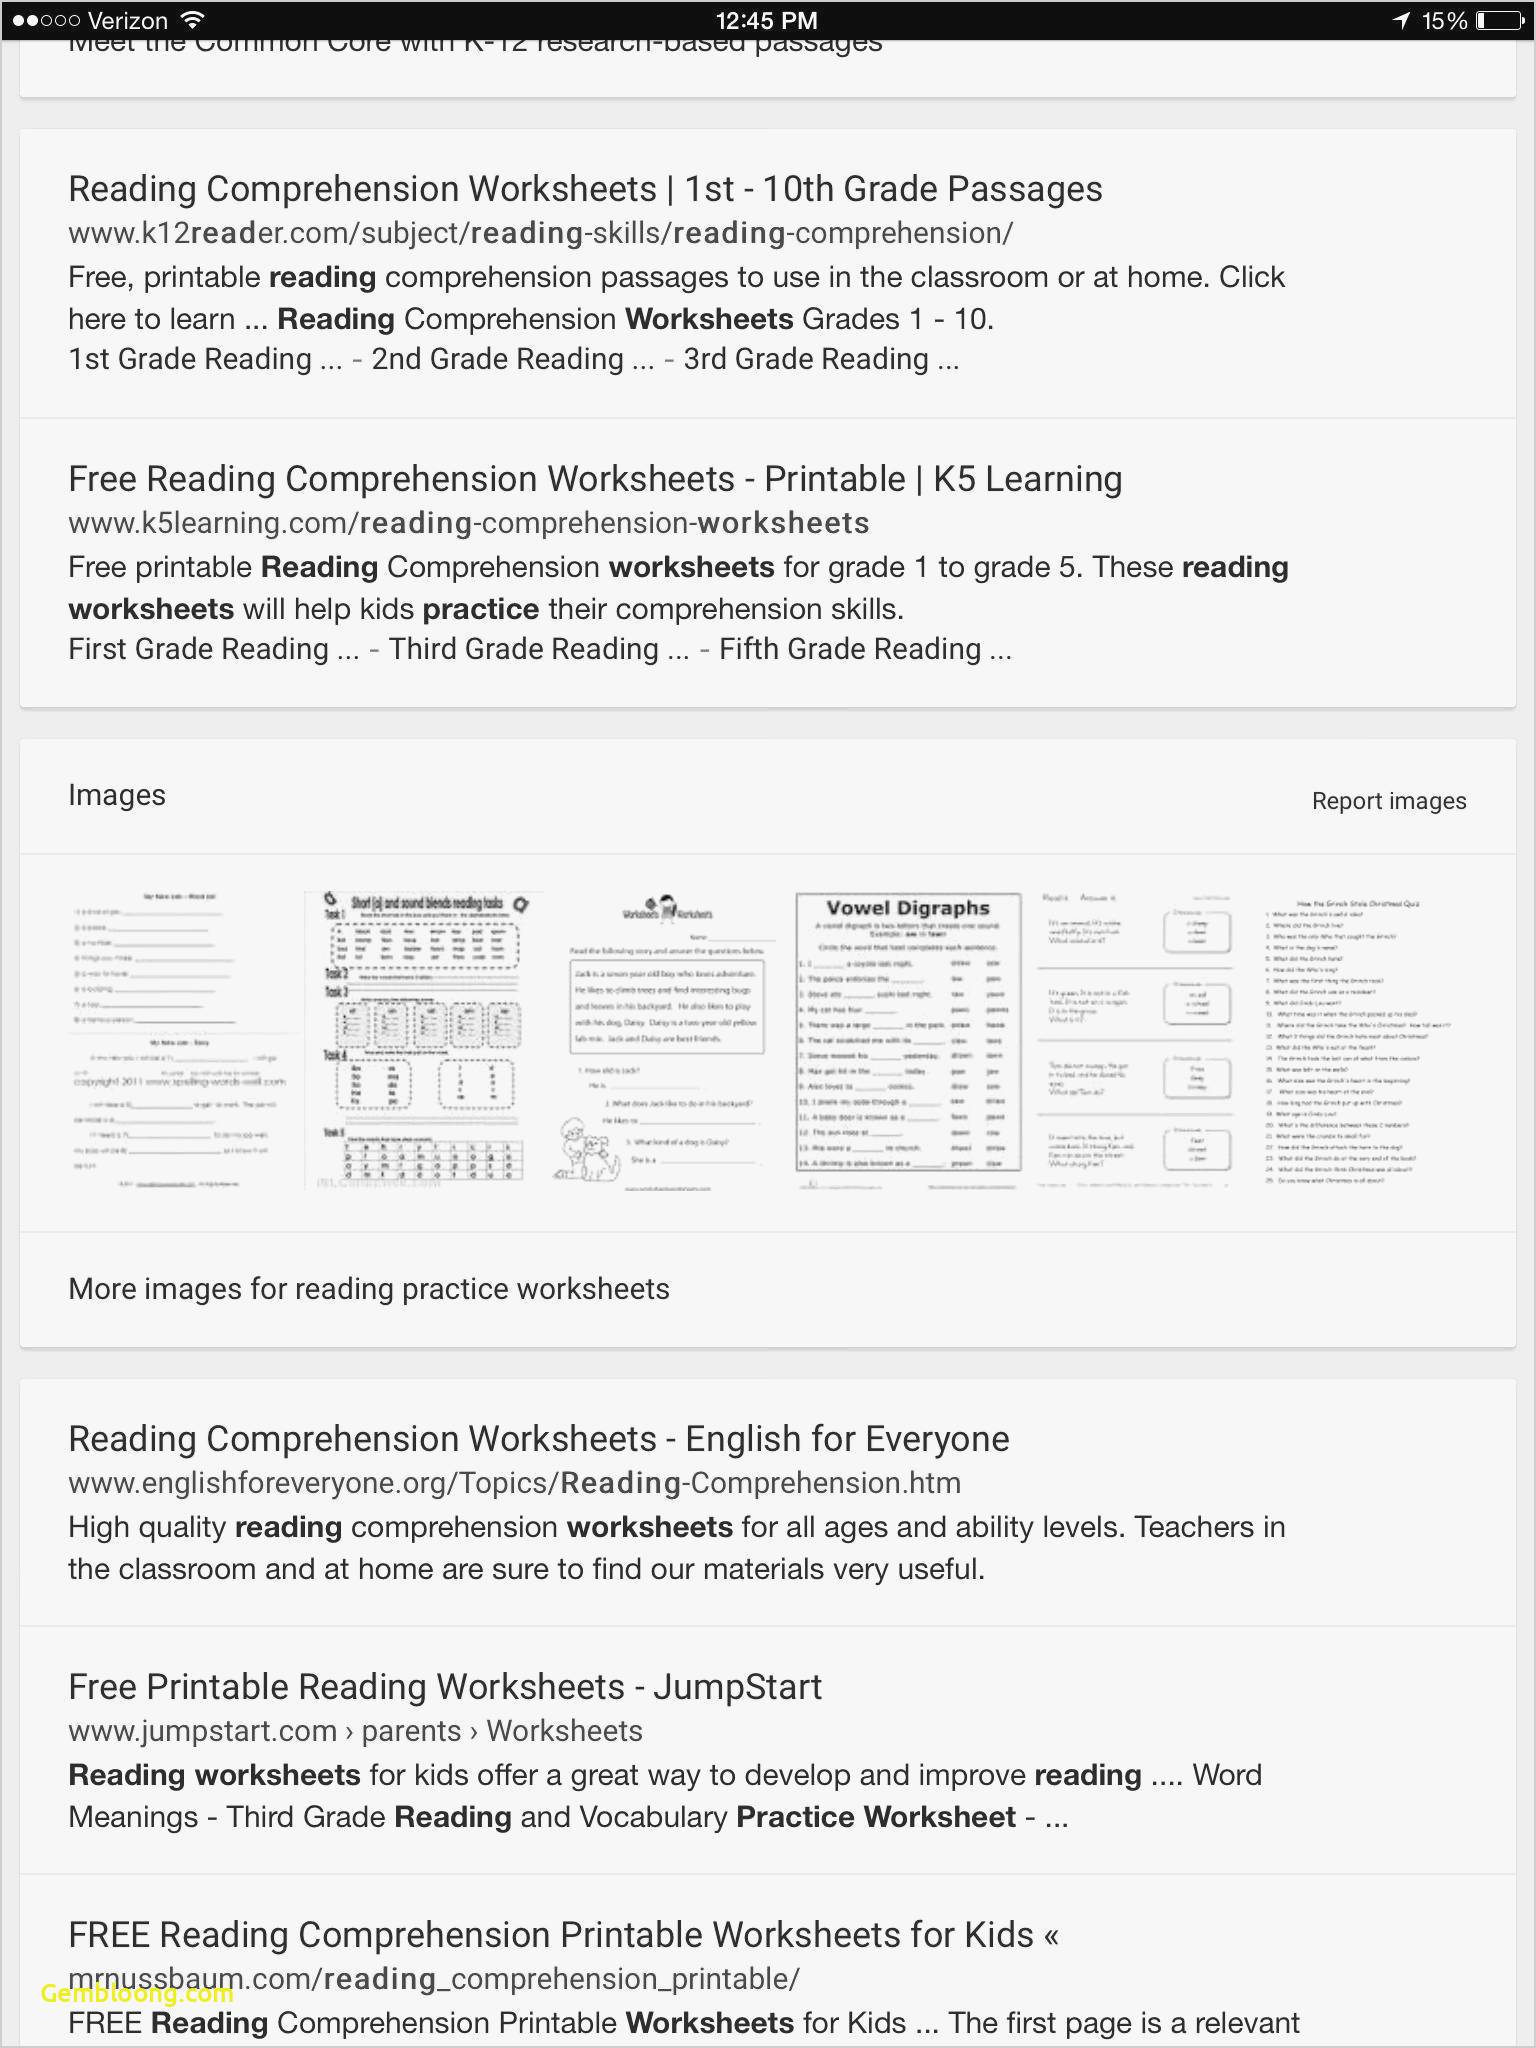 Reading Comprehension Worksheets For 1St Grade - Cramerforcongress | Free Printable Worksheets Reading Comprehension 5Th Grade